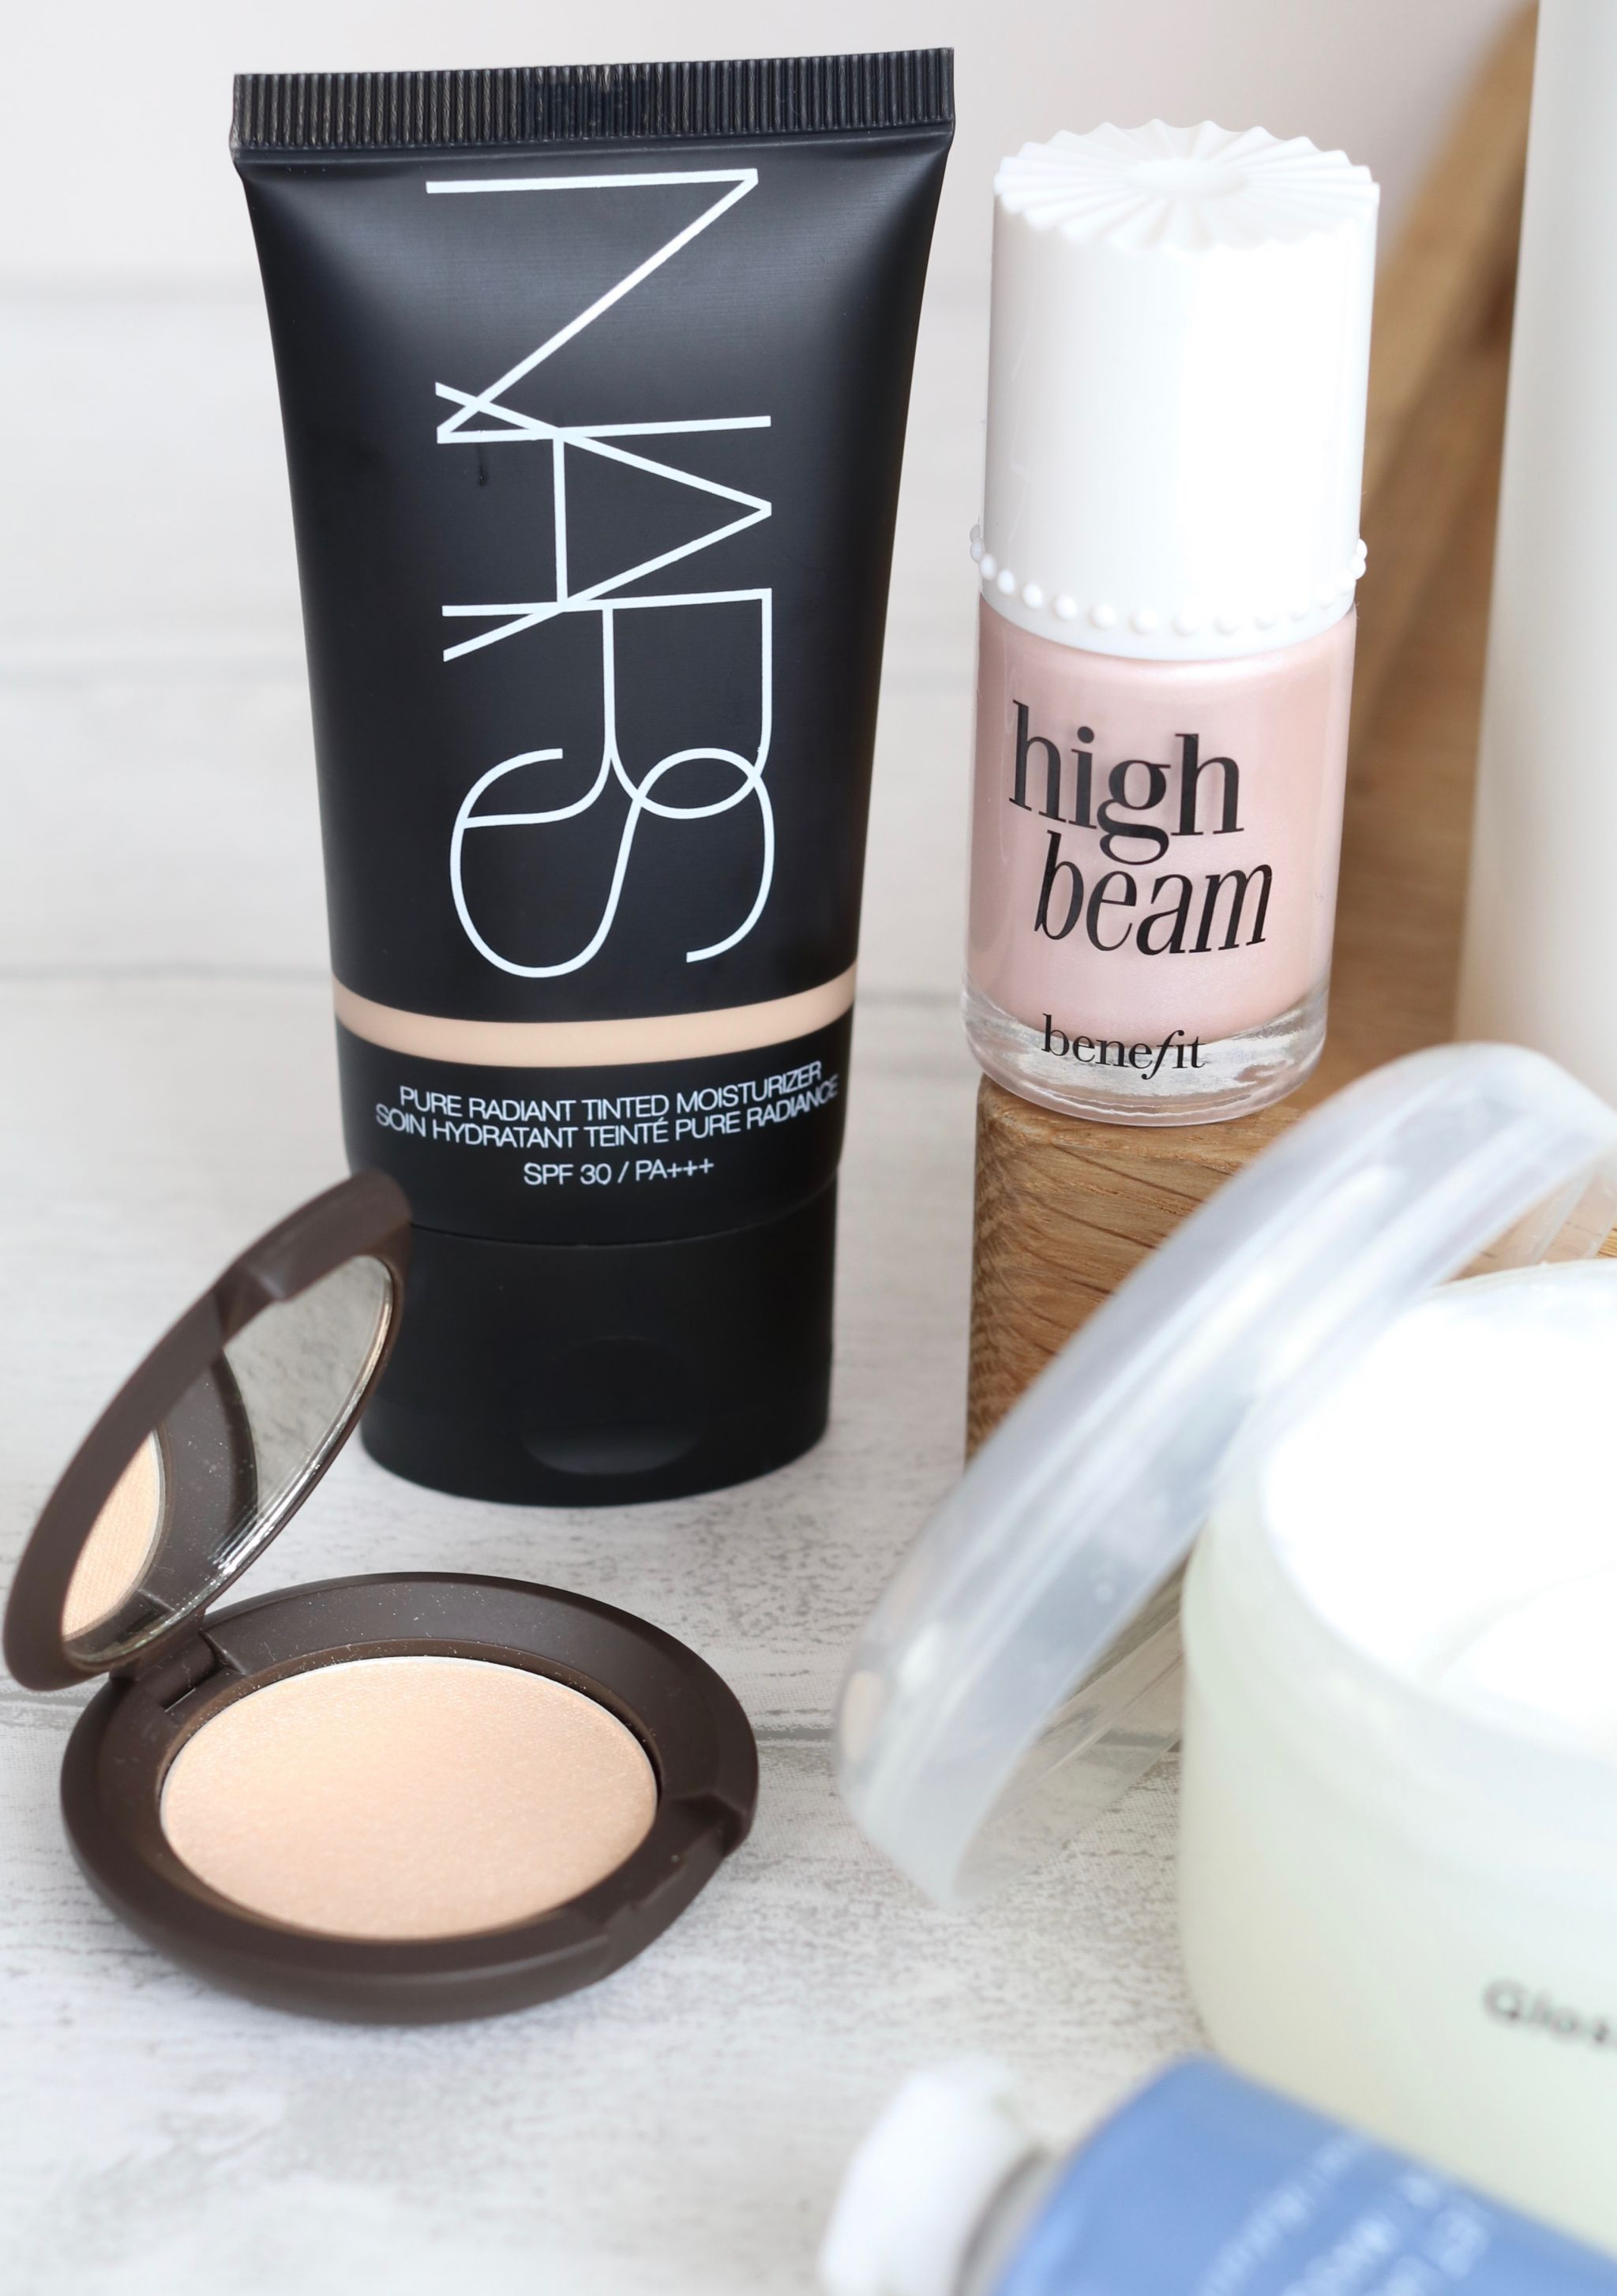 Mistakes to avoid if you have oily skin - Nars tinted moisturiser, Becca opal highlighter, Summer Fridays jet lag mask, Glossier mositure moon, Benefit high beam